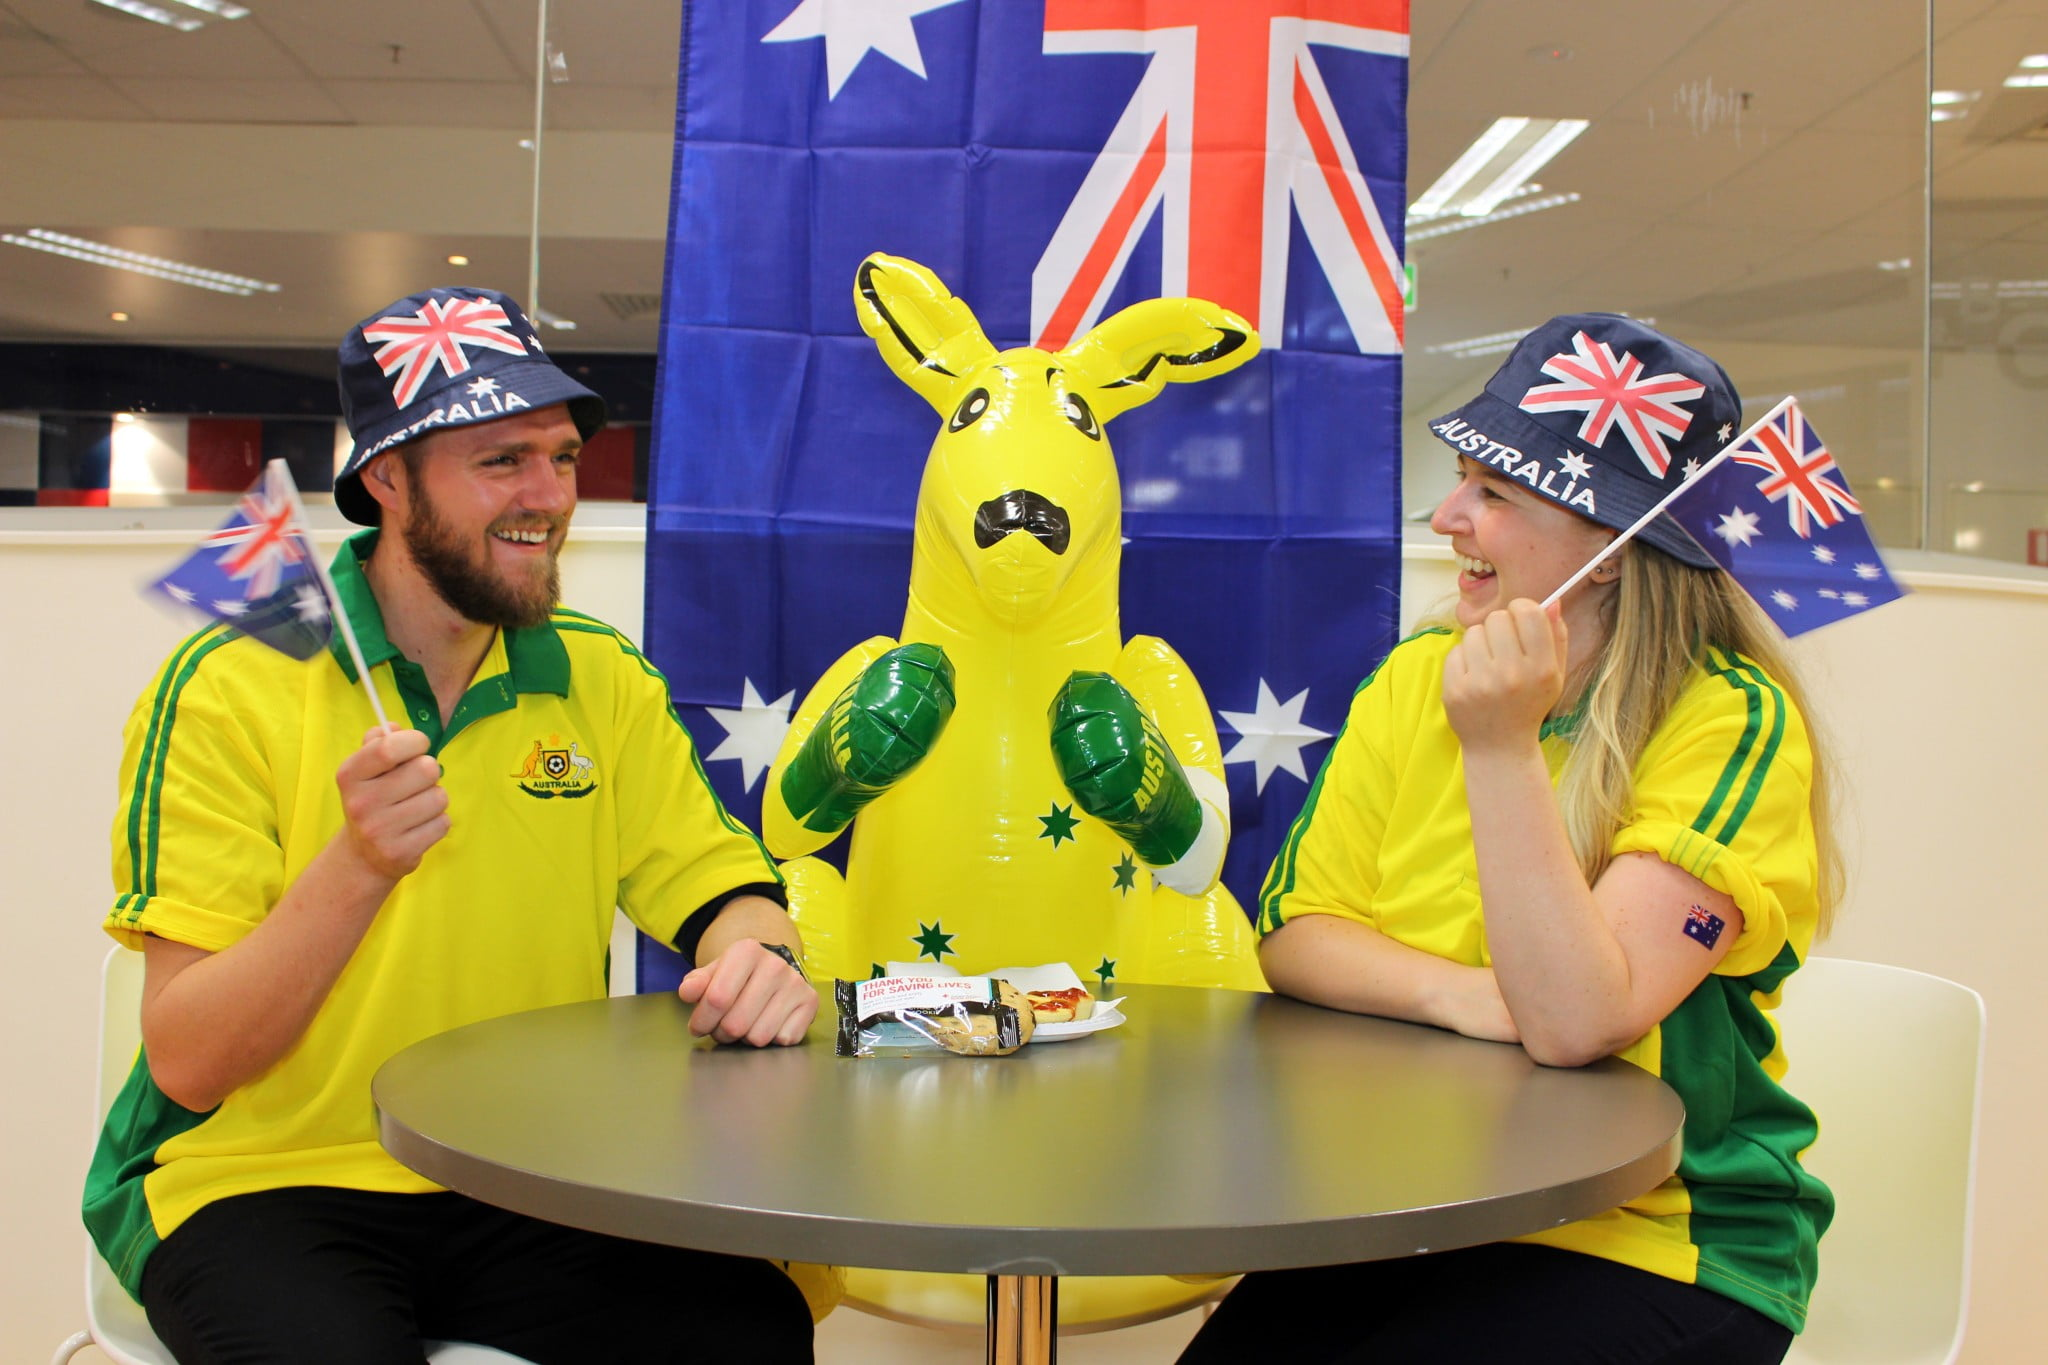 Bleed for Australia, donors in green and gold with inflatable kangaroo waving flags